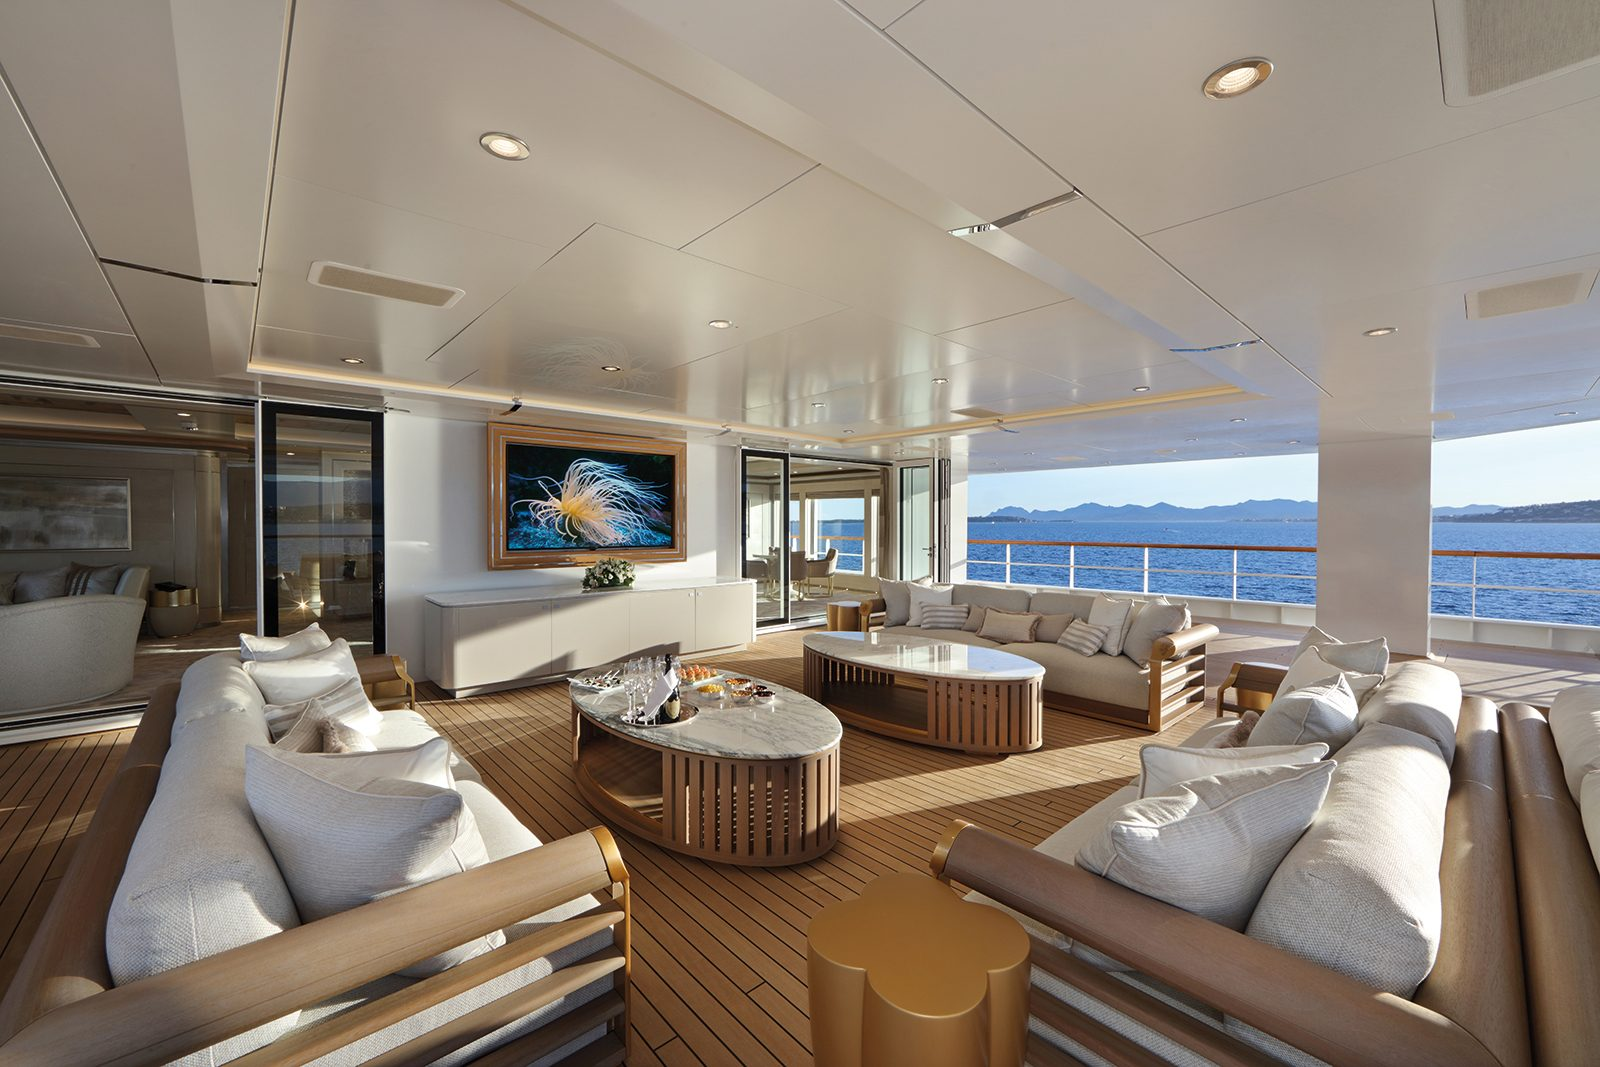 Top 5 Luxury Yacht Interiors By H2 Yacht Design